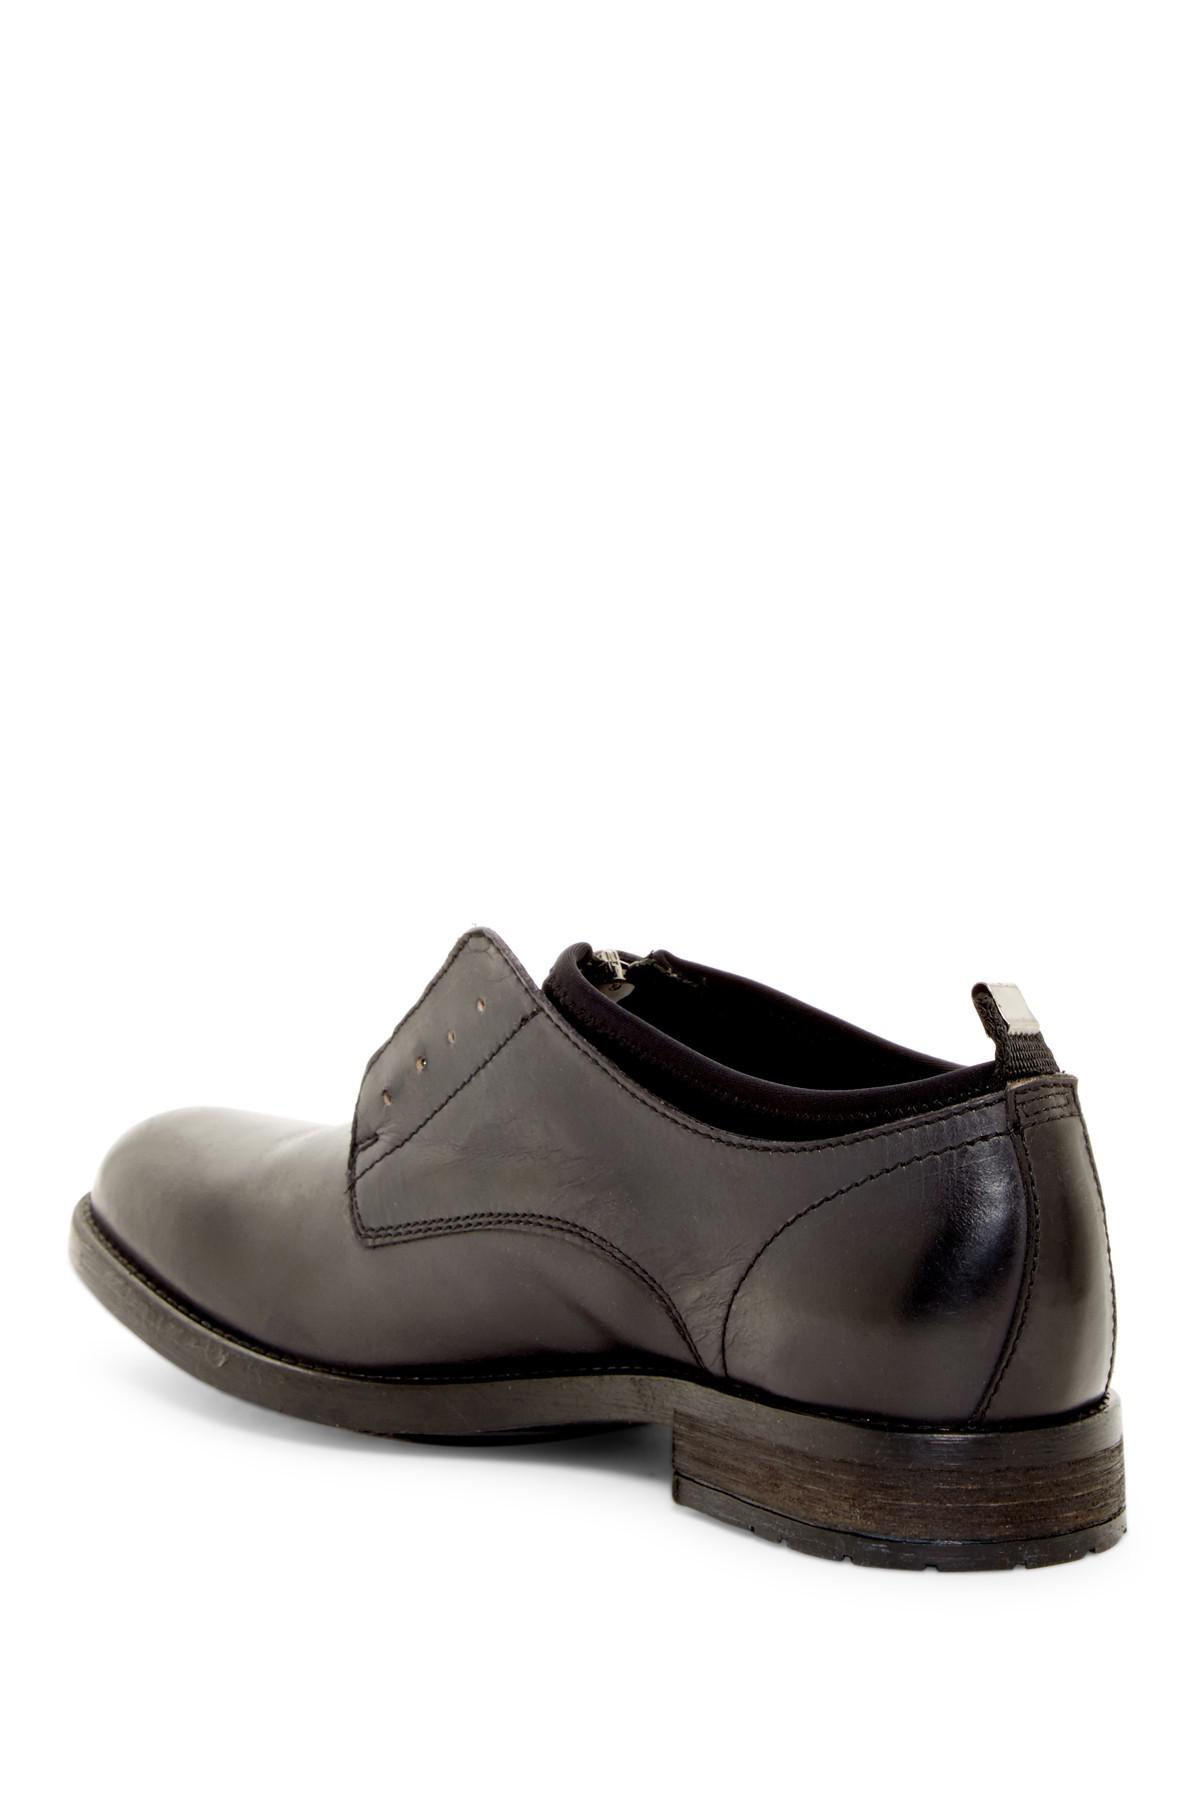 Diesel Serberhus D Lowyy Lace Less Oxford In Black For Men